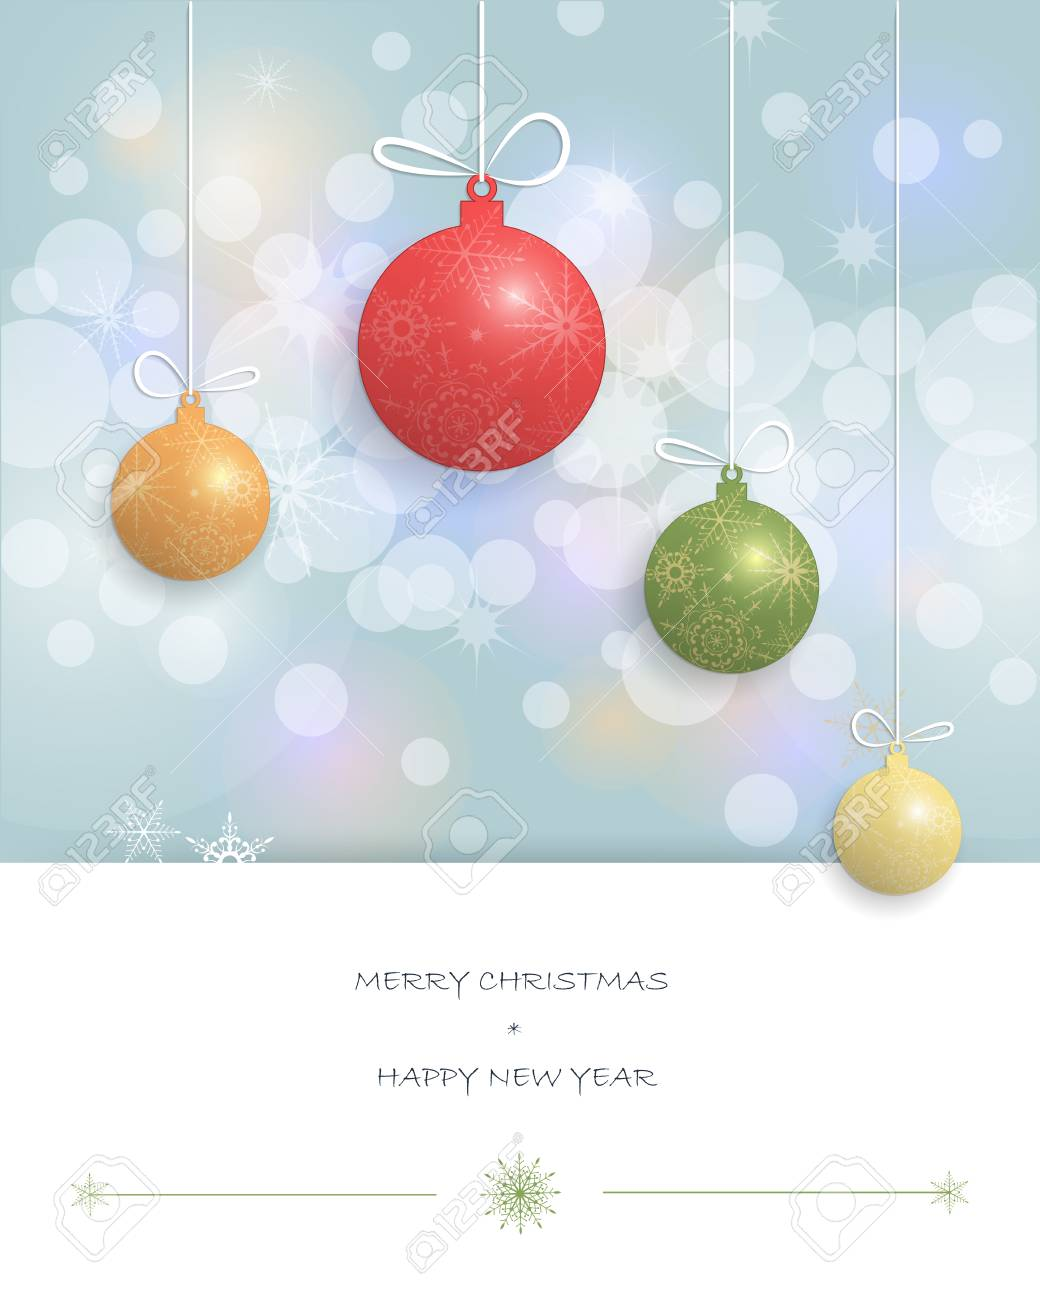 Christmas Greeting Cards Design.Merry Christmas Card Design Greeting Cards With Christmas Ball